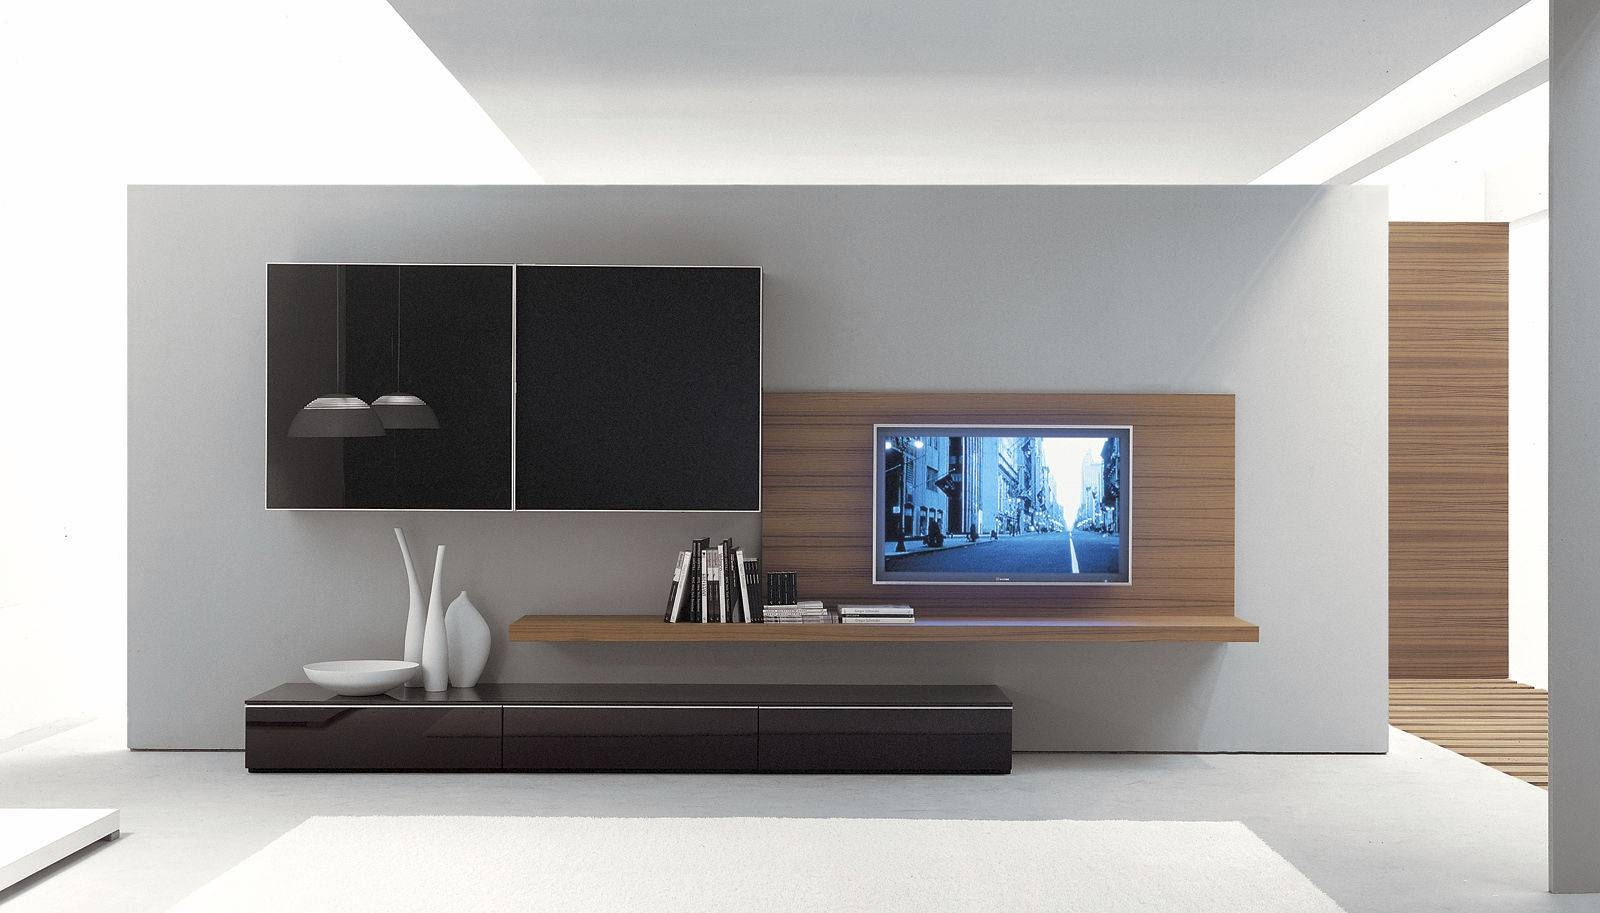 Wall Units. Astonishing Ideas On The Wall Tv Units: Breathtaking inside On The Wall Tv Units (Image 13 of 15)